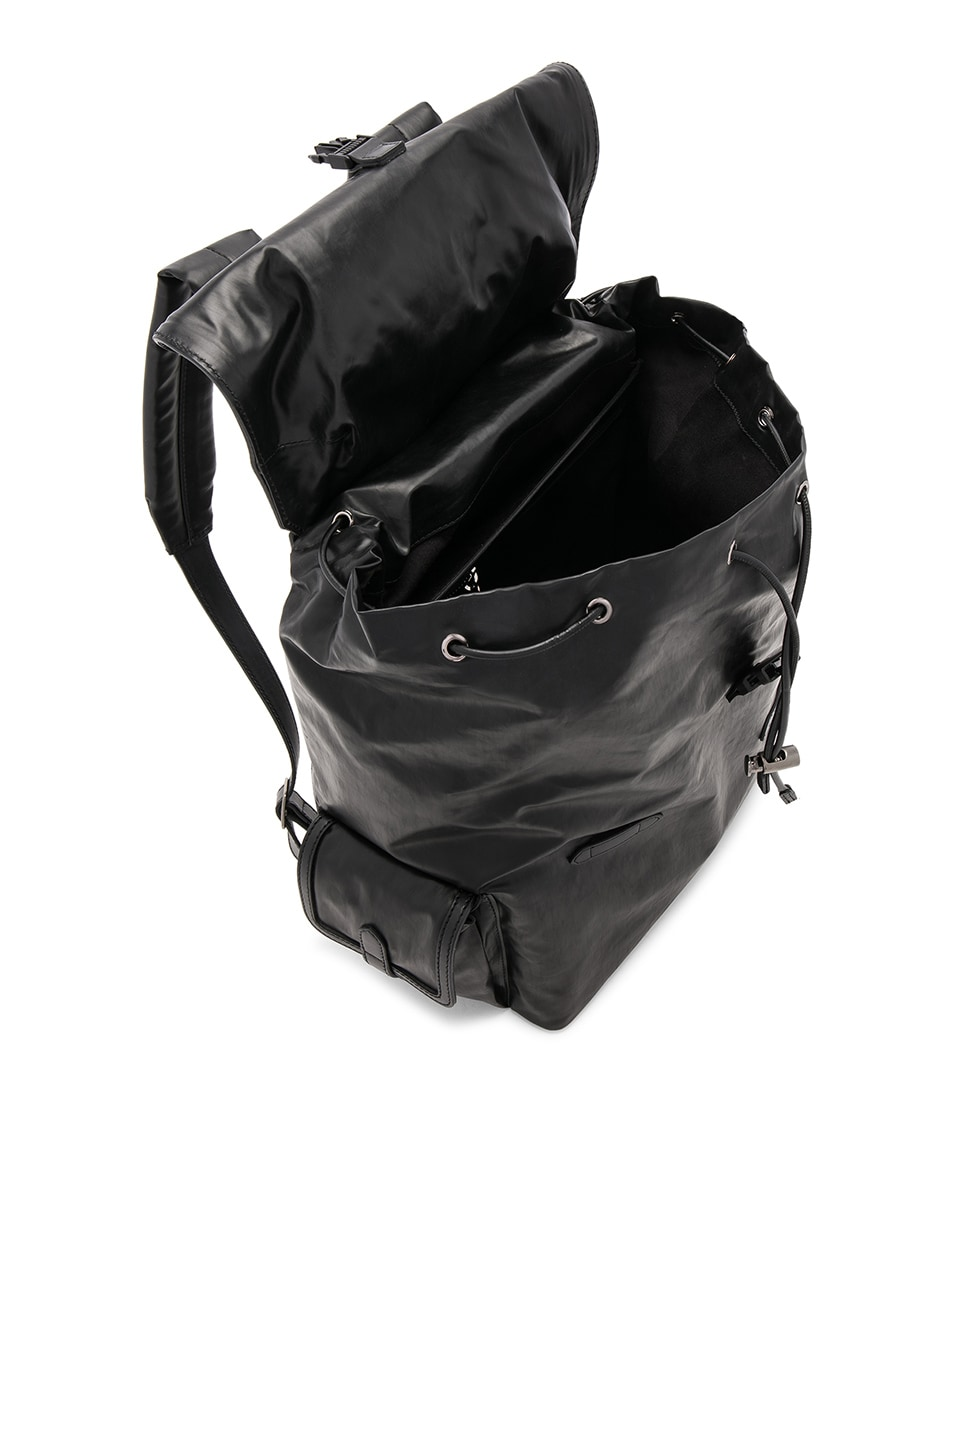 stella mccartney backpack in black modesens. Black Bedroom Furniture Sets. Home Design Ideas